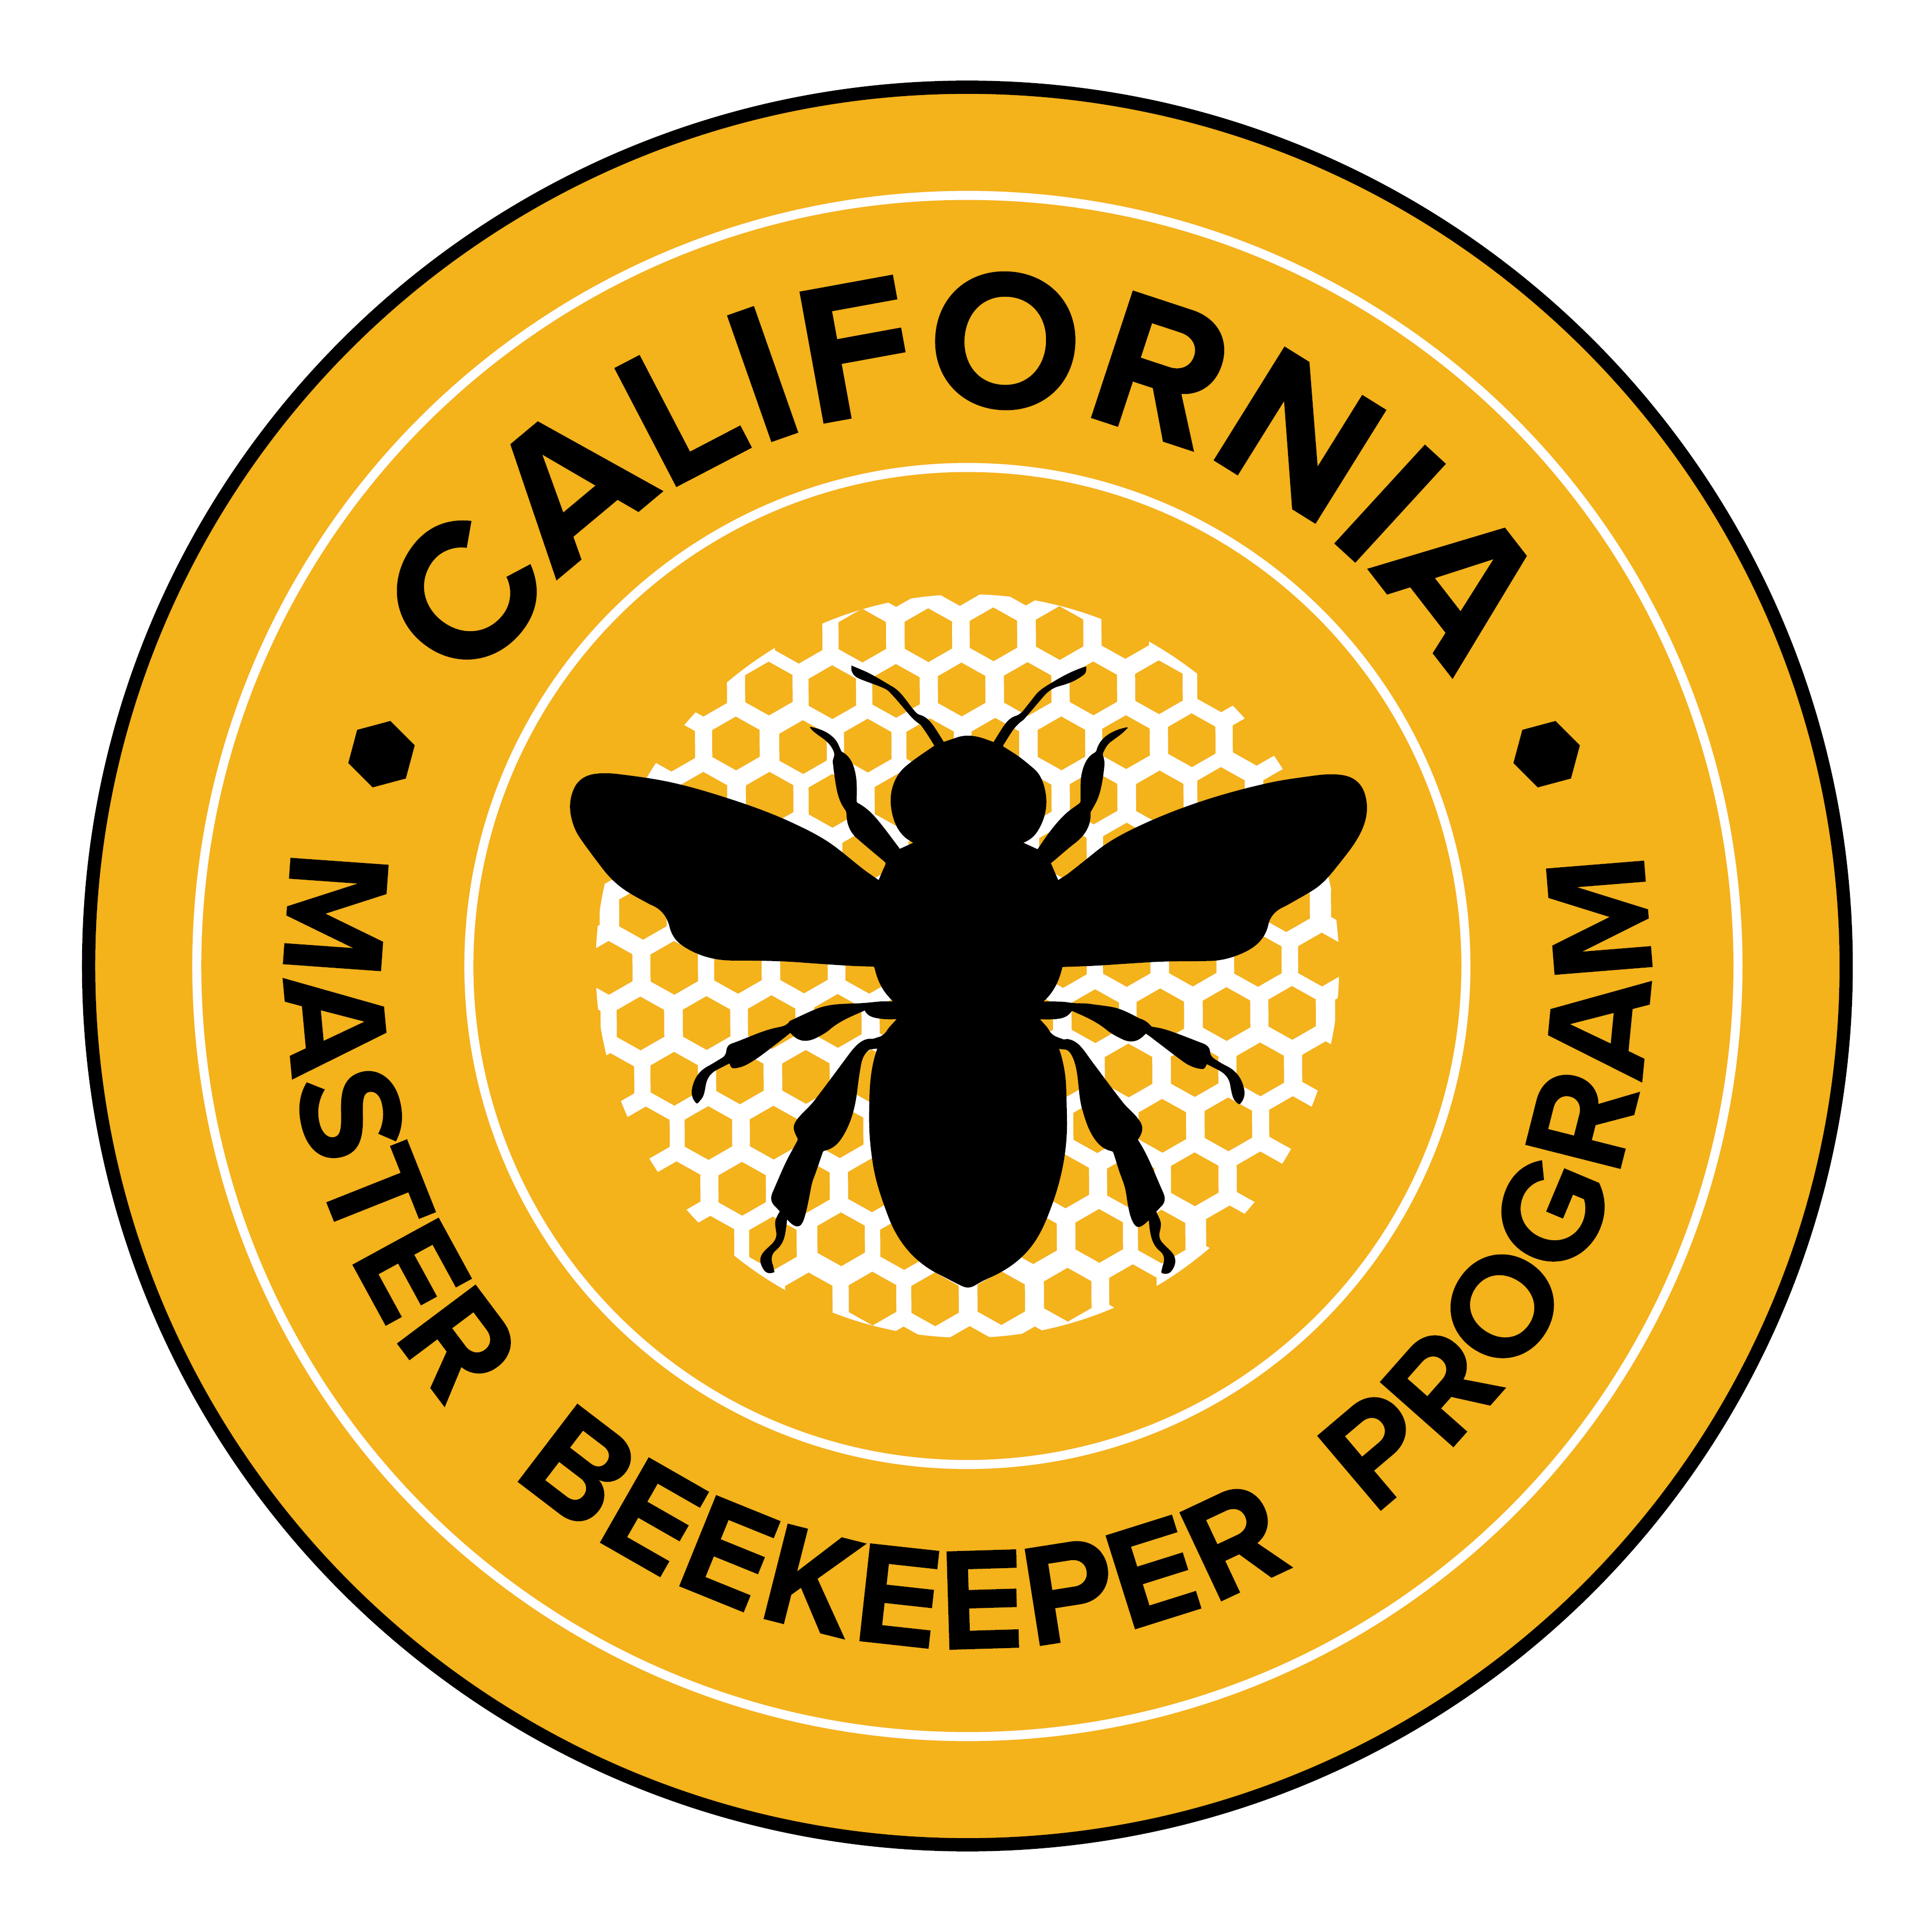 California Master Beekeeper Program | Using science based information to educate stewards and ambassadors for honey bees and beekeeping